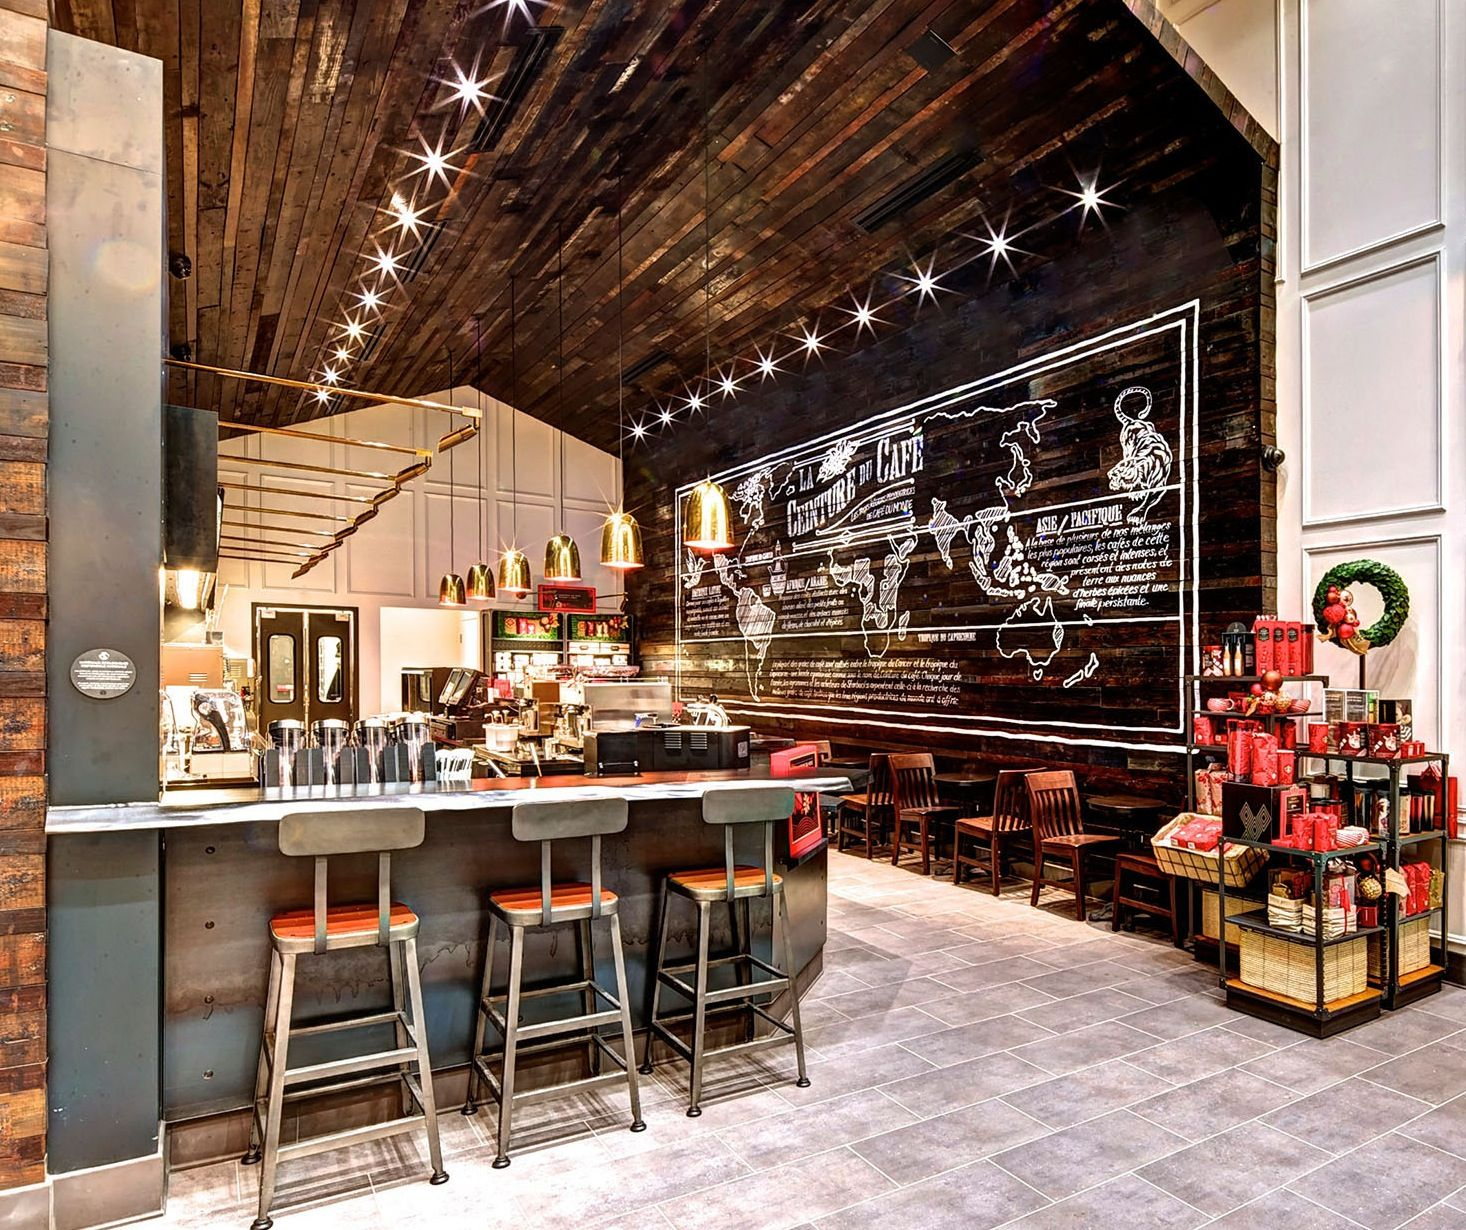 5a0171a5c24 The Starbucks Store at St. Catherine Street and Greene Avenue in Montreal  incorporates local recycled and reclaimed materials, including the rustic  wood on ...